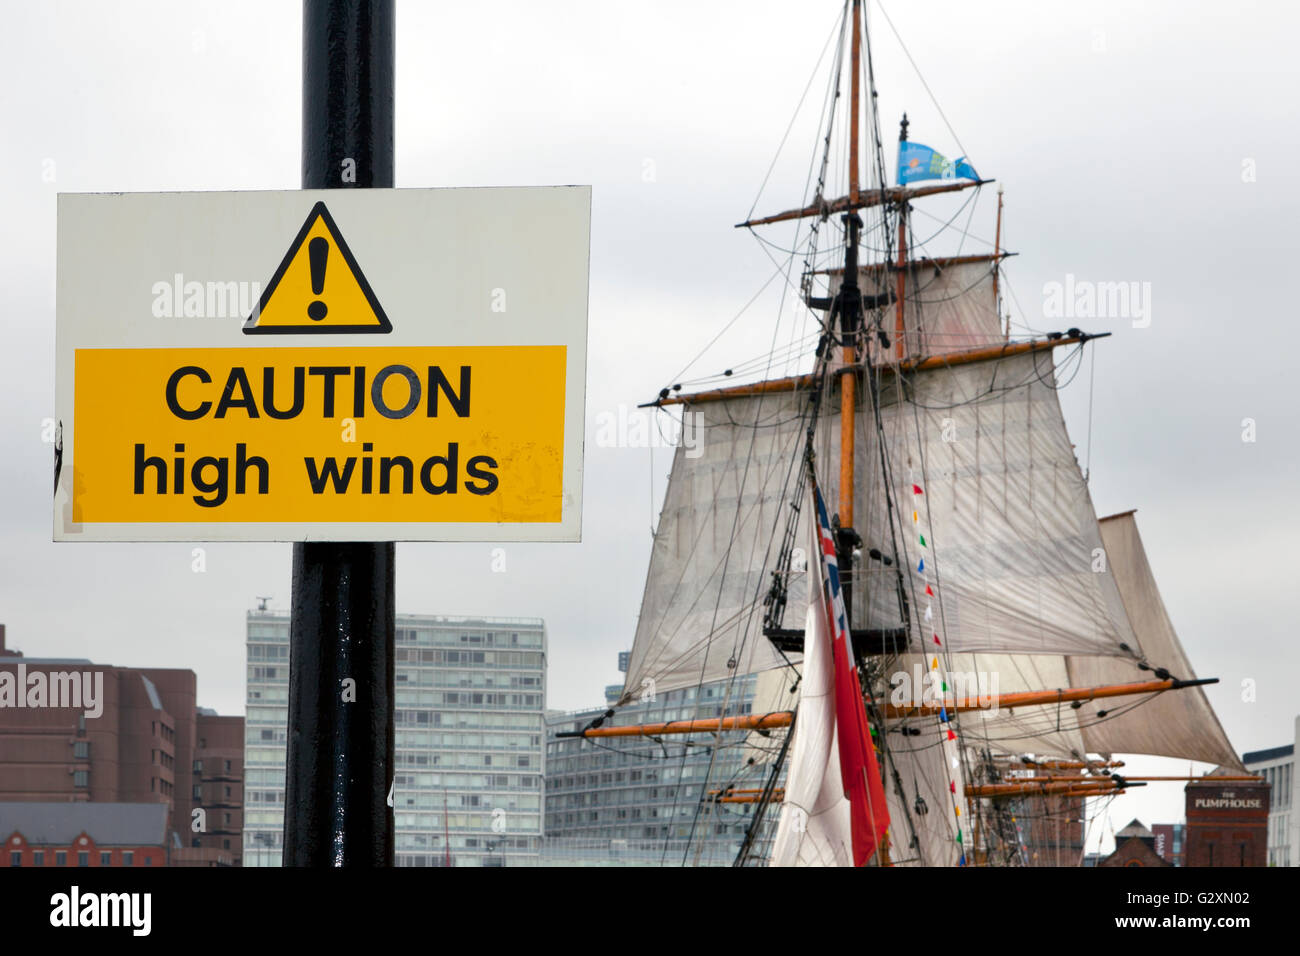 Caution High Winds _Tall ships on display at the International Mersey River Festival 2016 - Stock Image